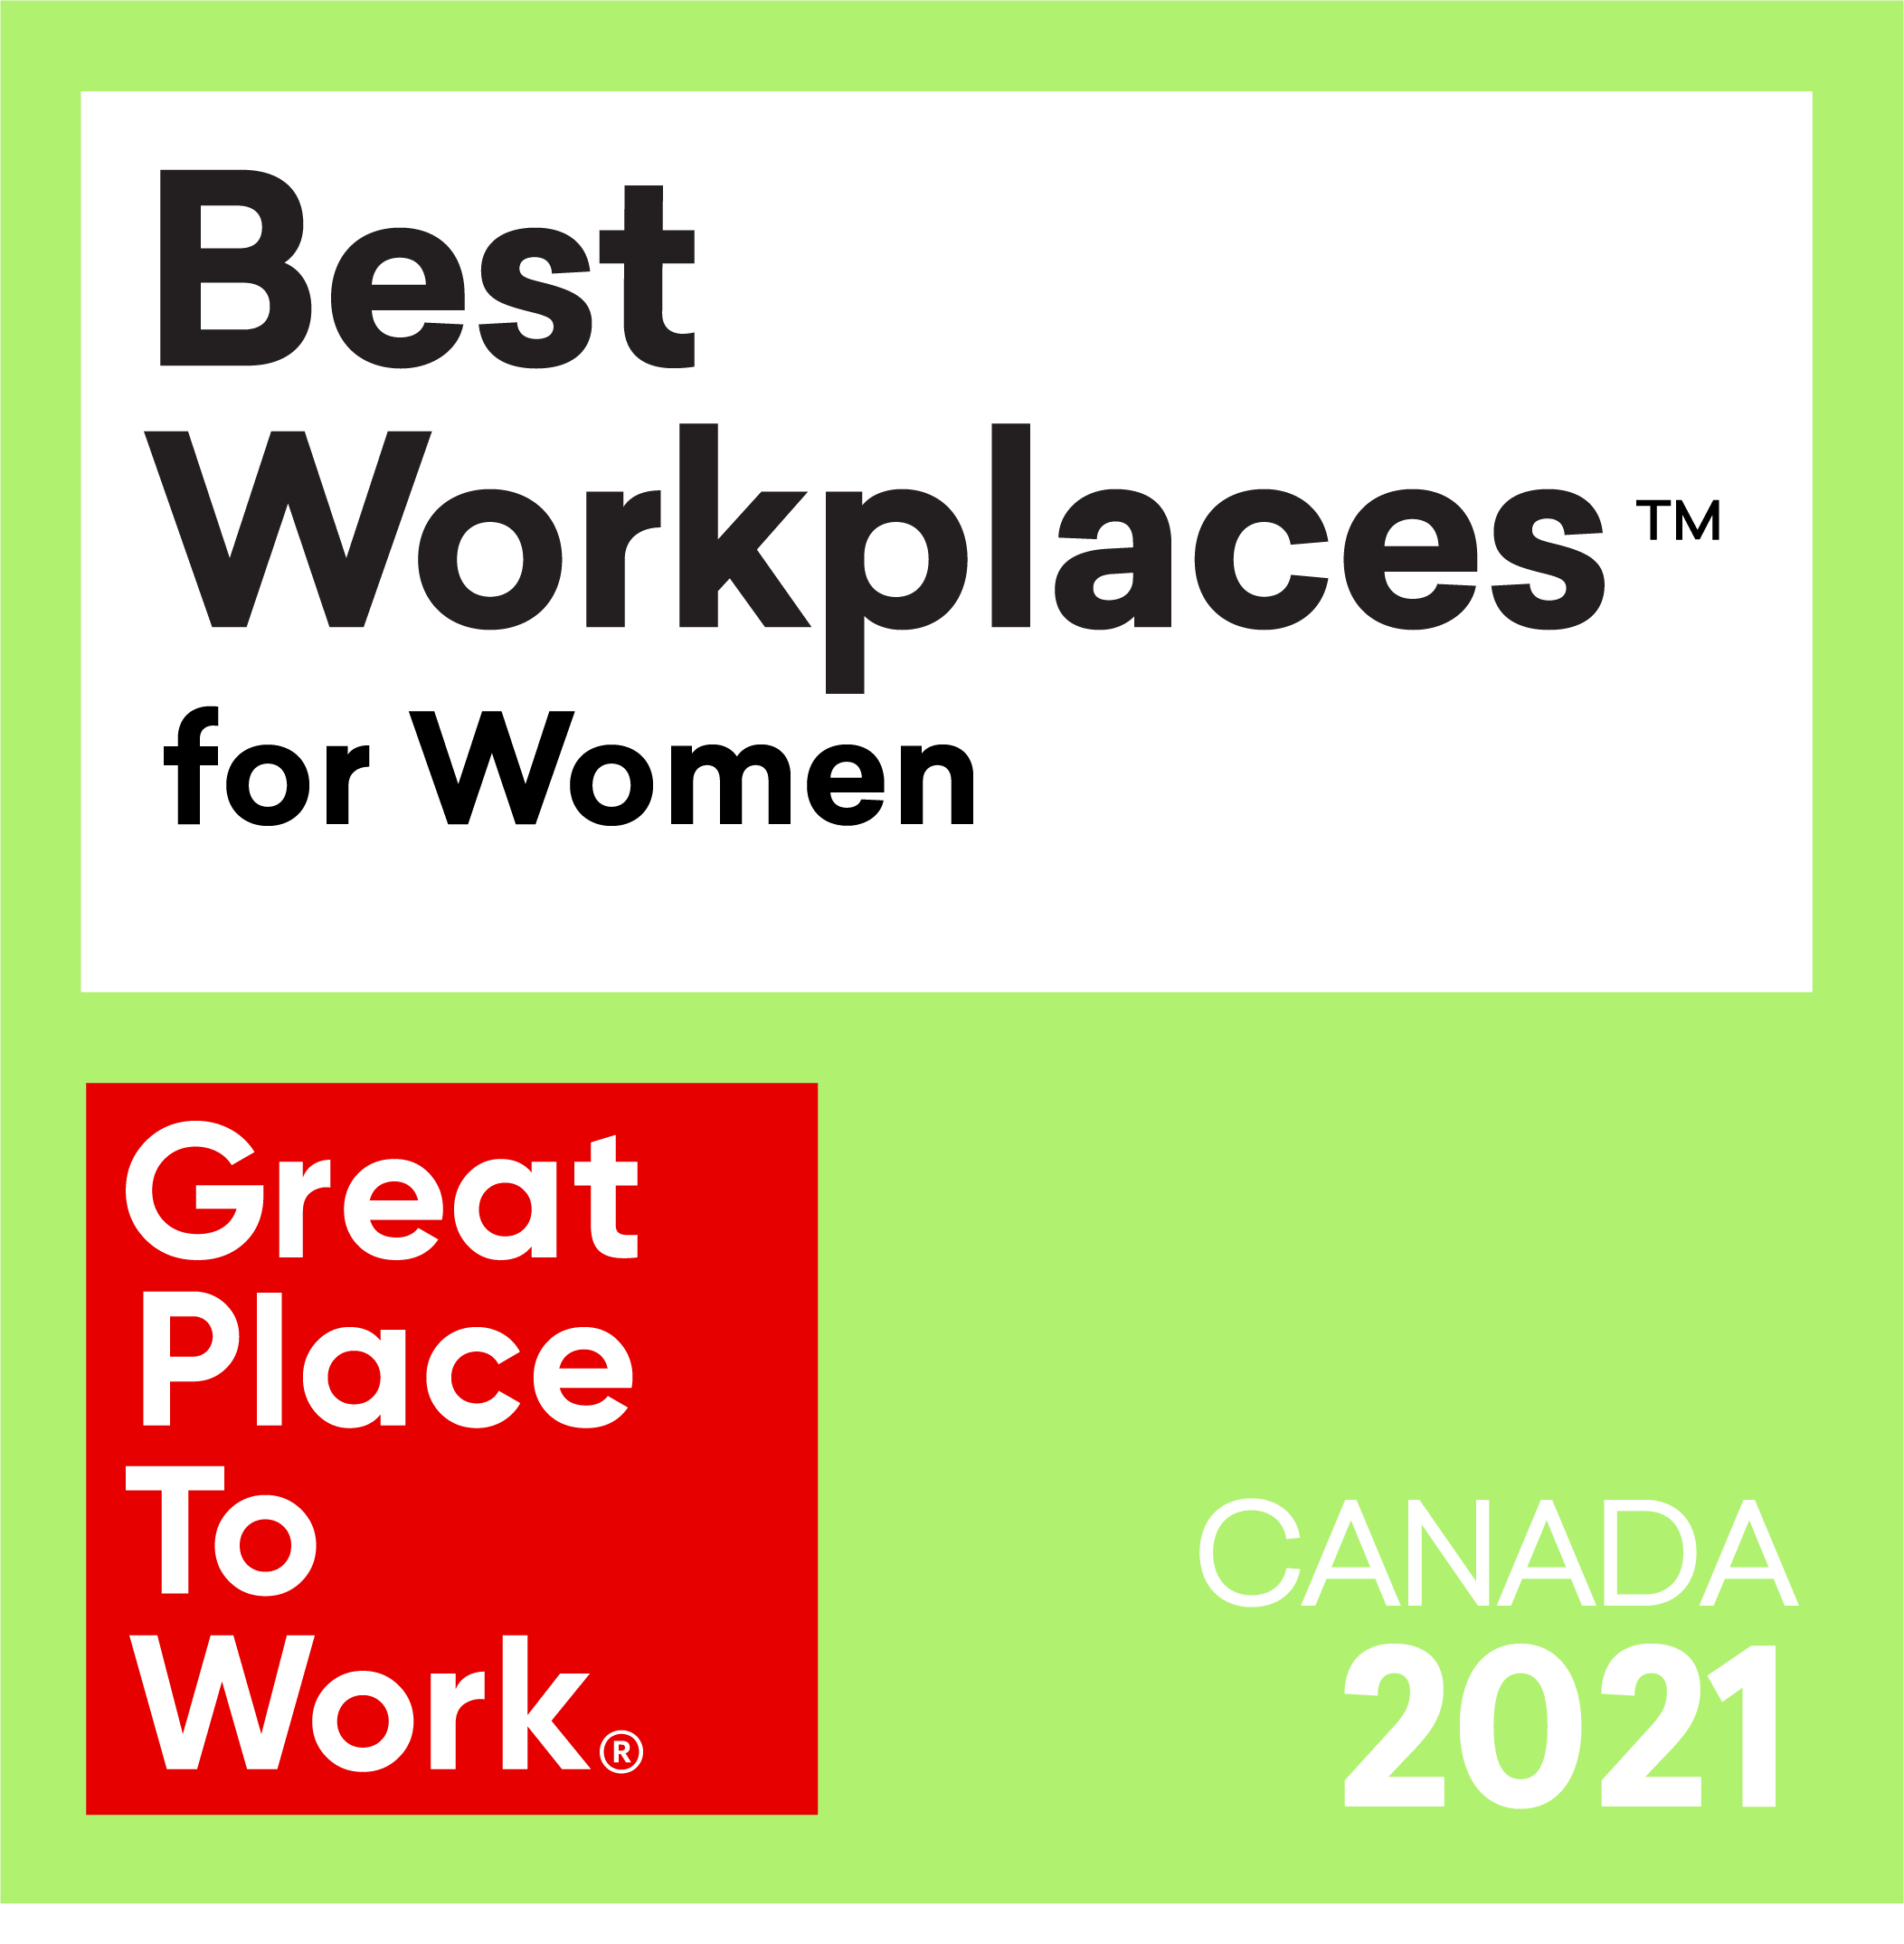 Logo of Best Workplaces for Women award